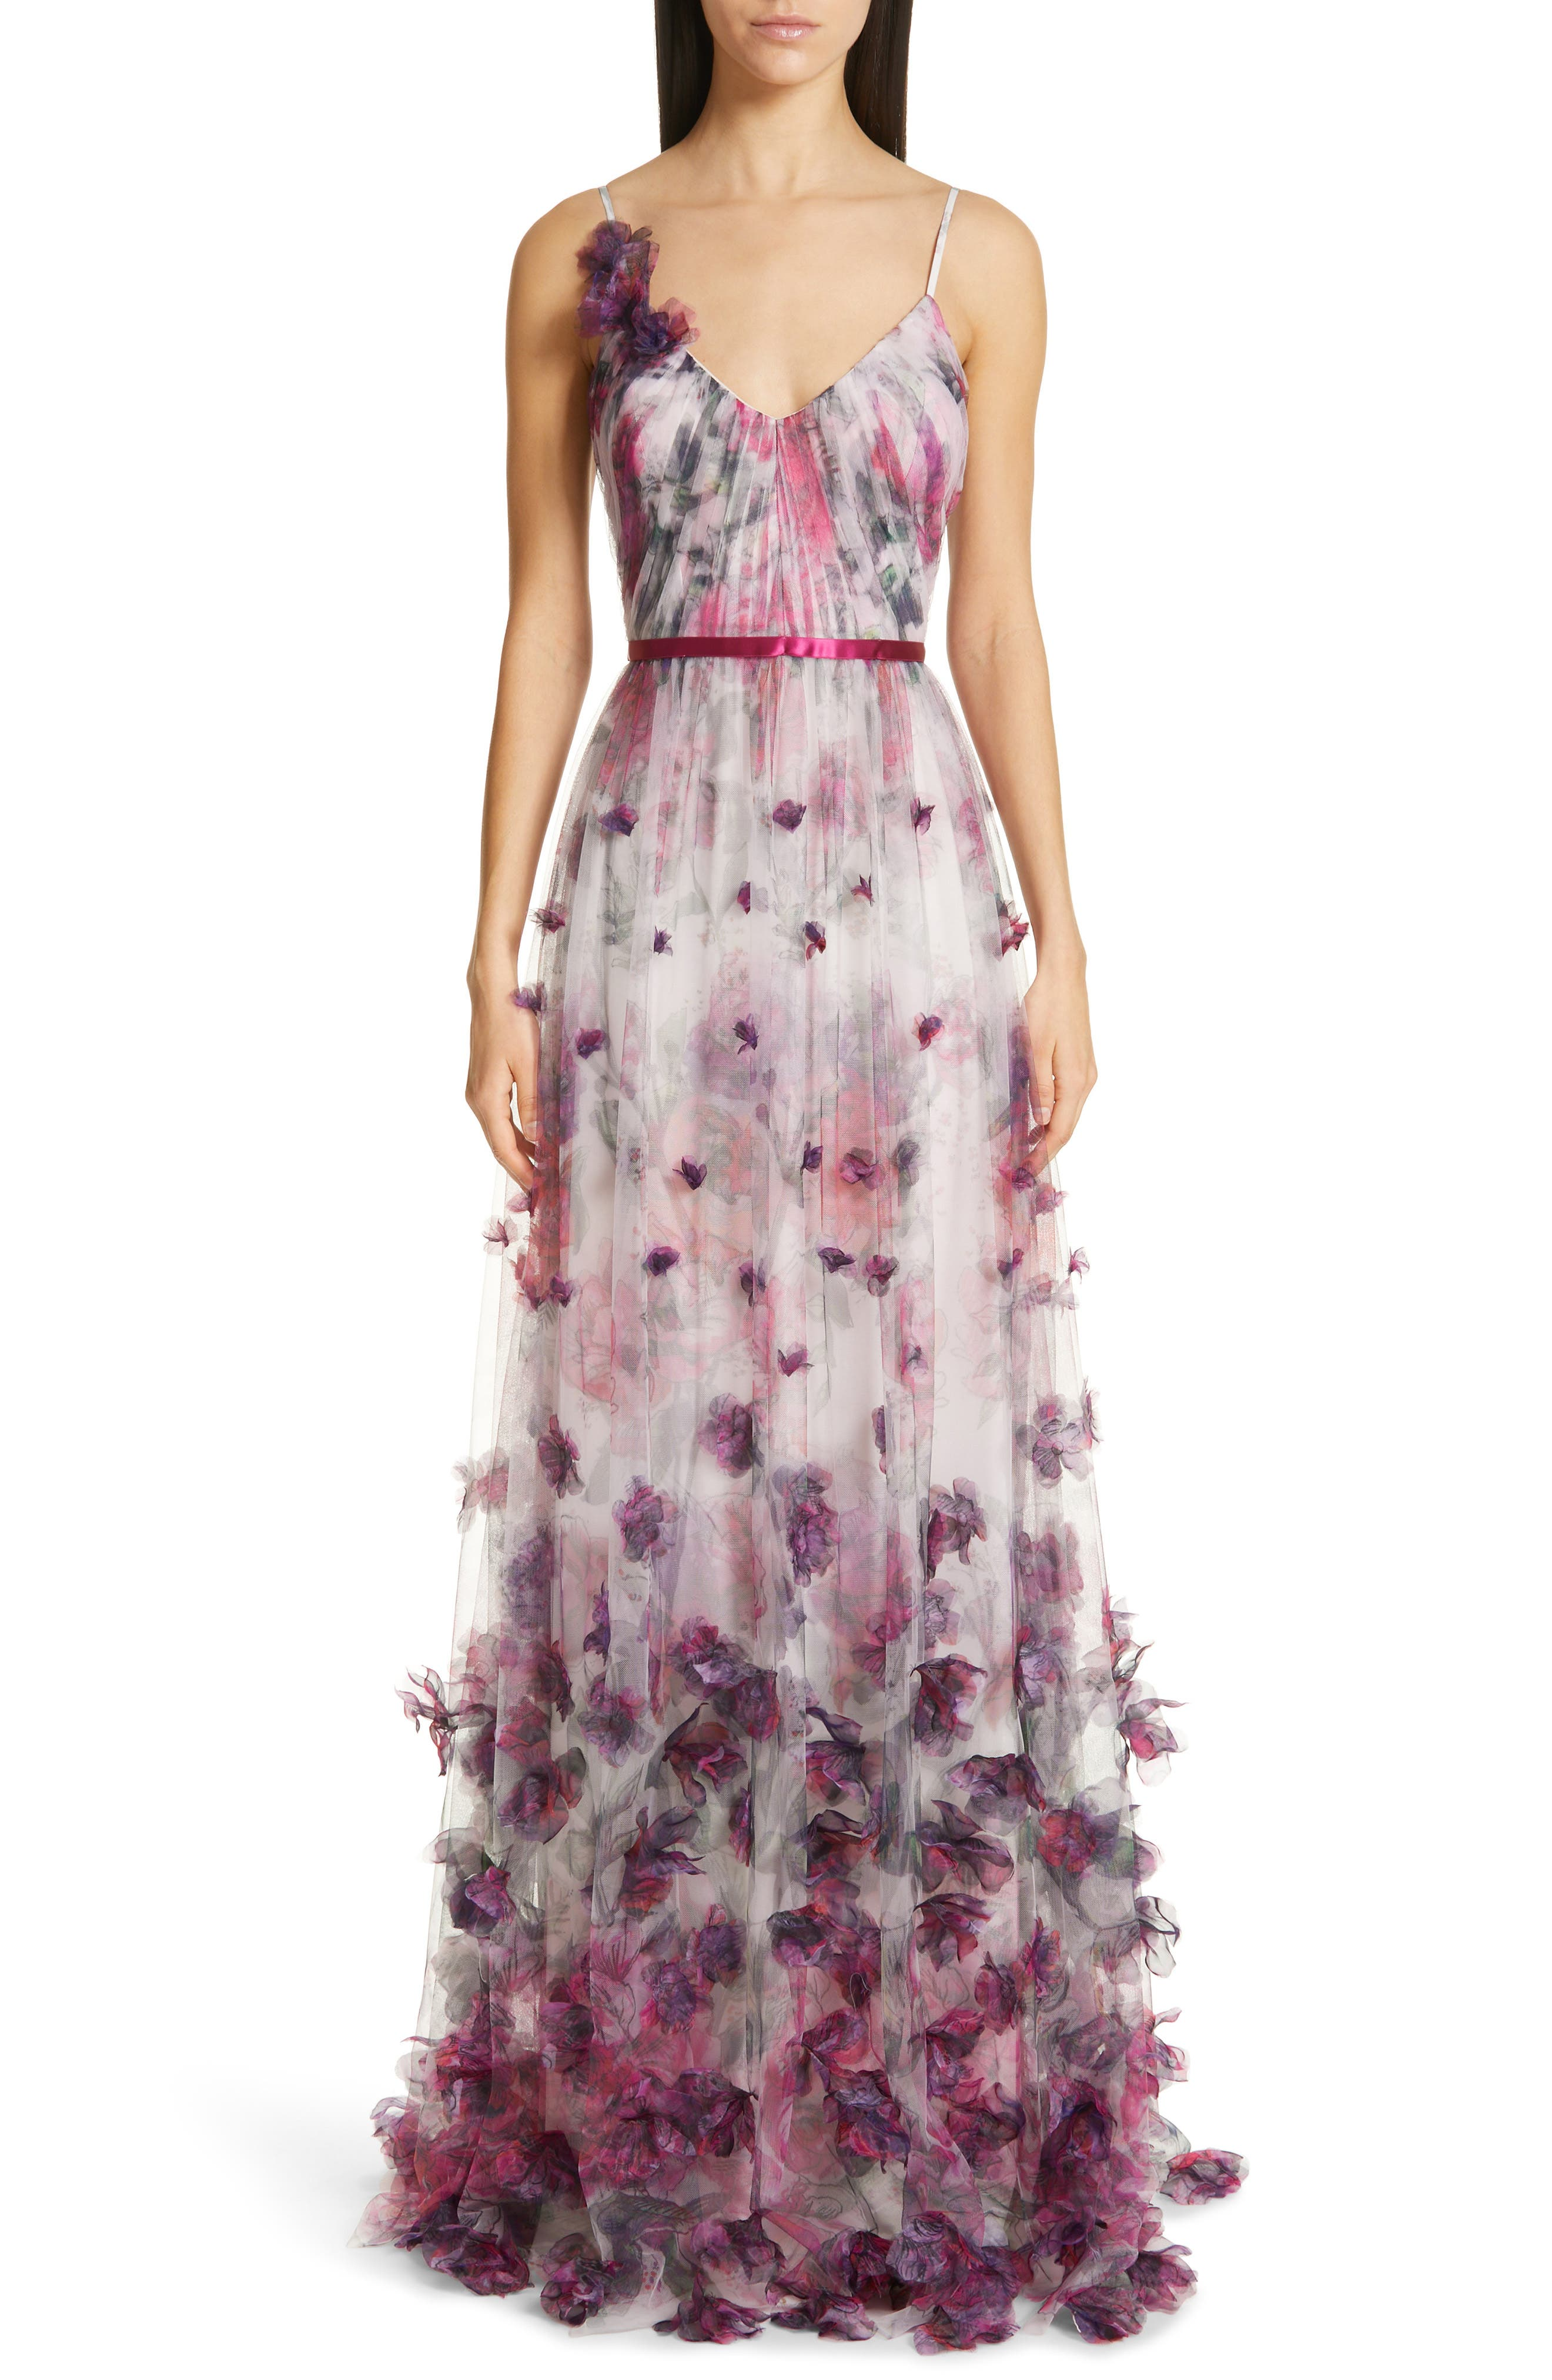 67e1a47d19c5c Marchesa Notte 3D Floral Tulle Evening Dress